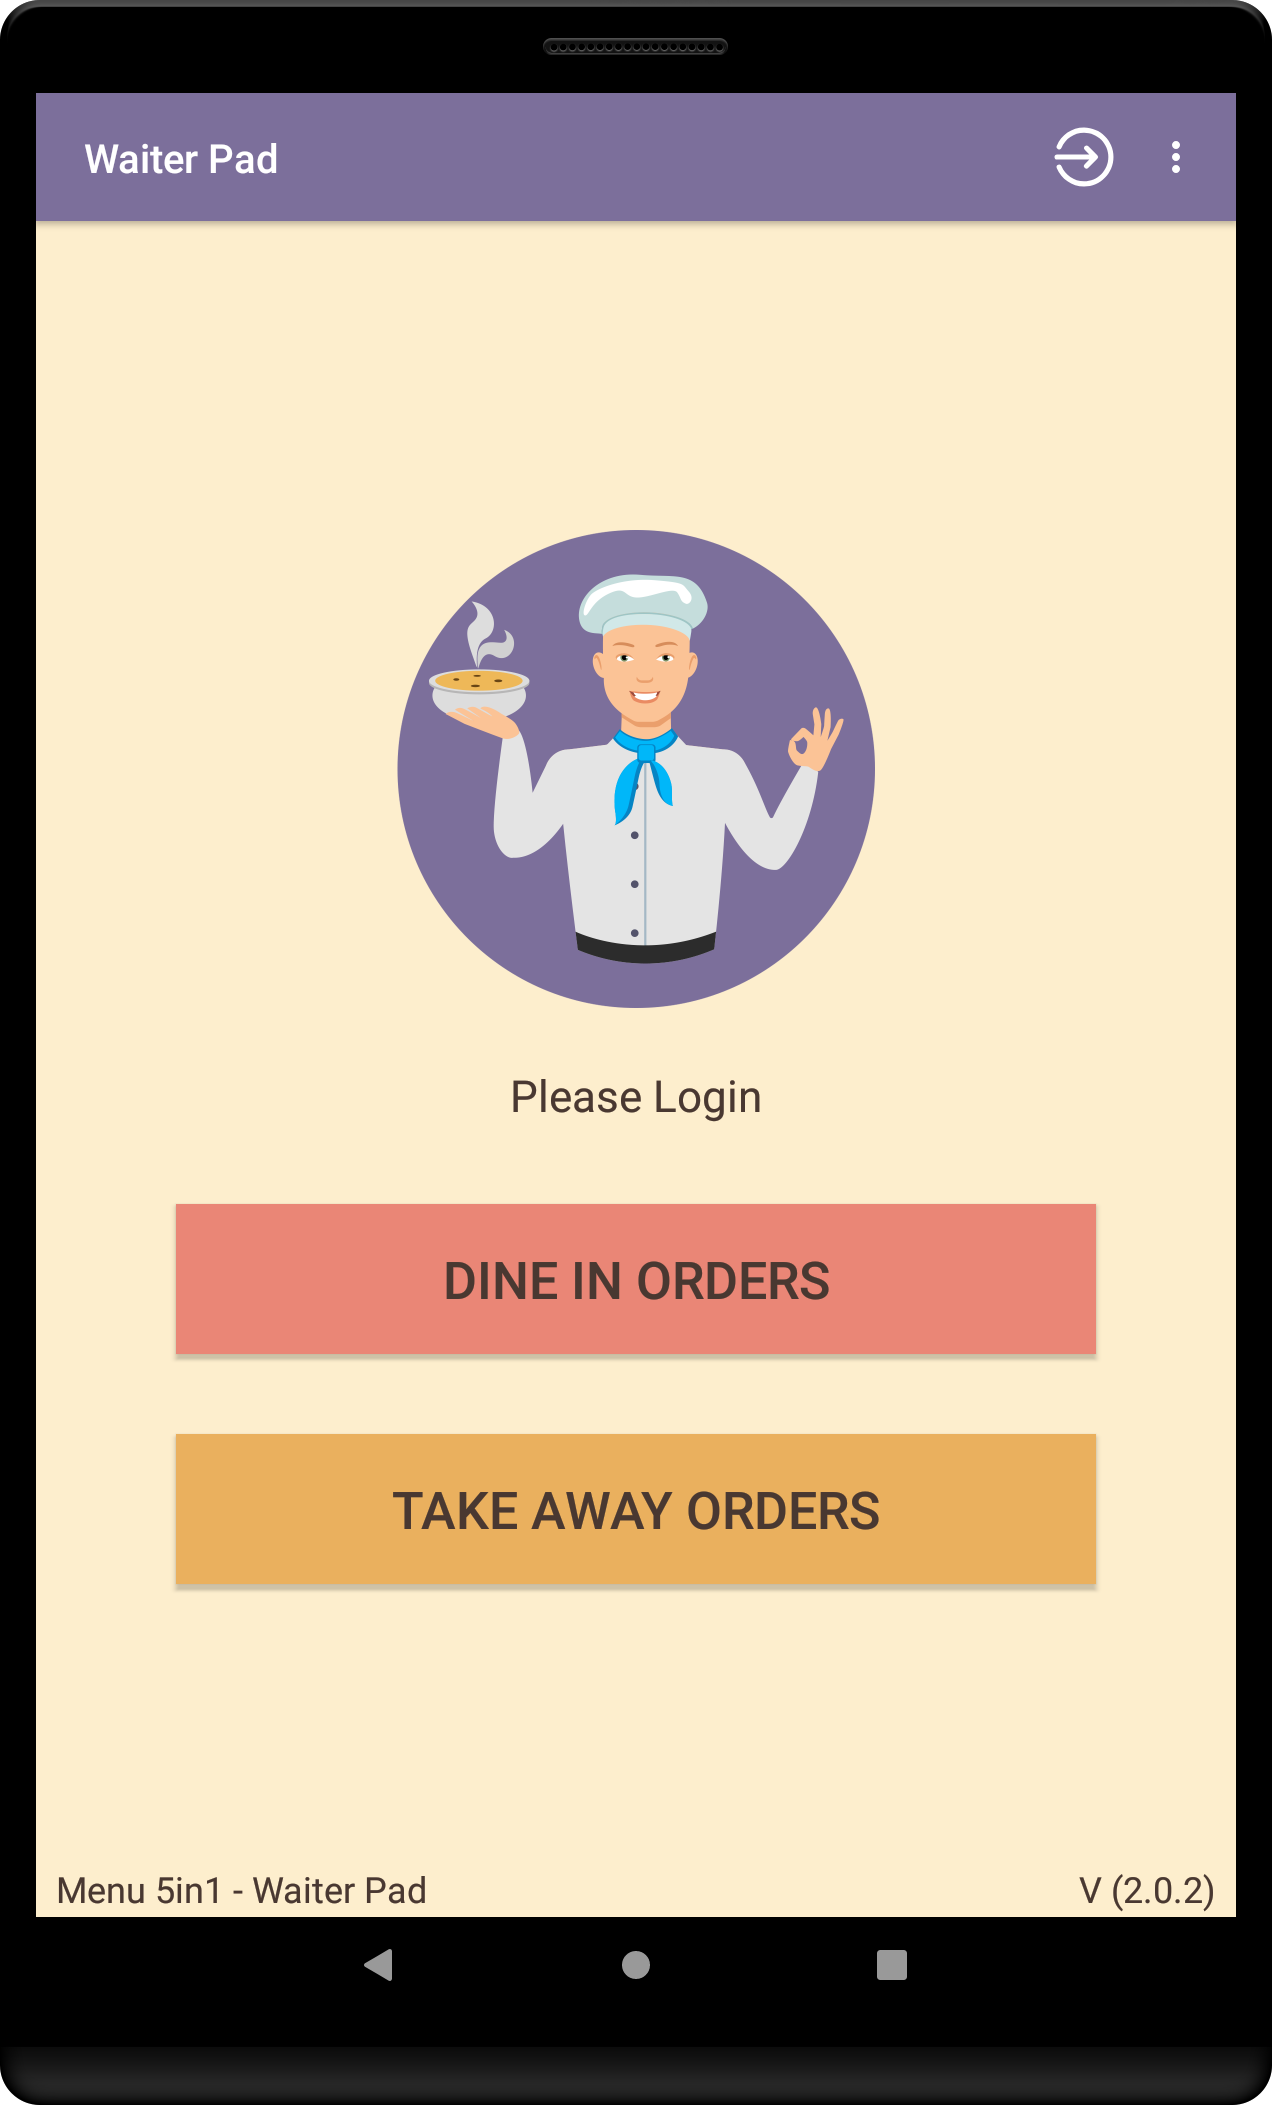 Cham Solutions & Programs - Menu 5in1 Waiter Pad